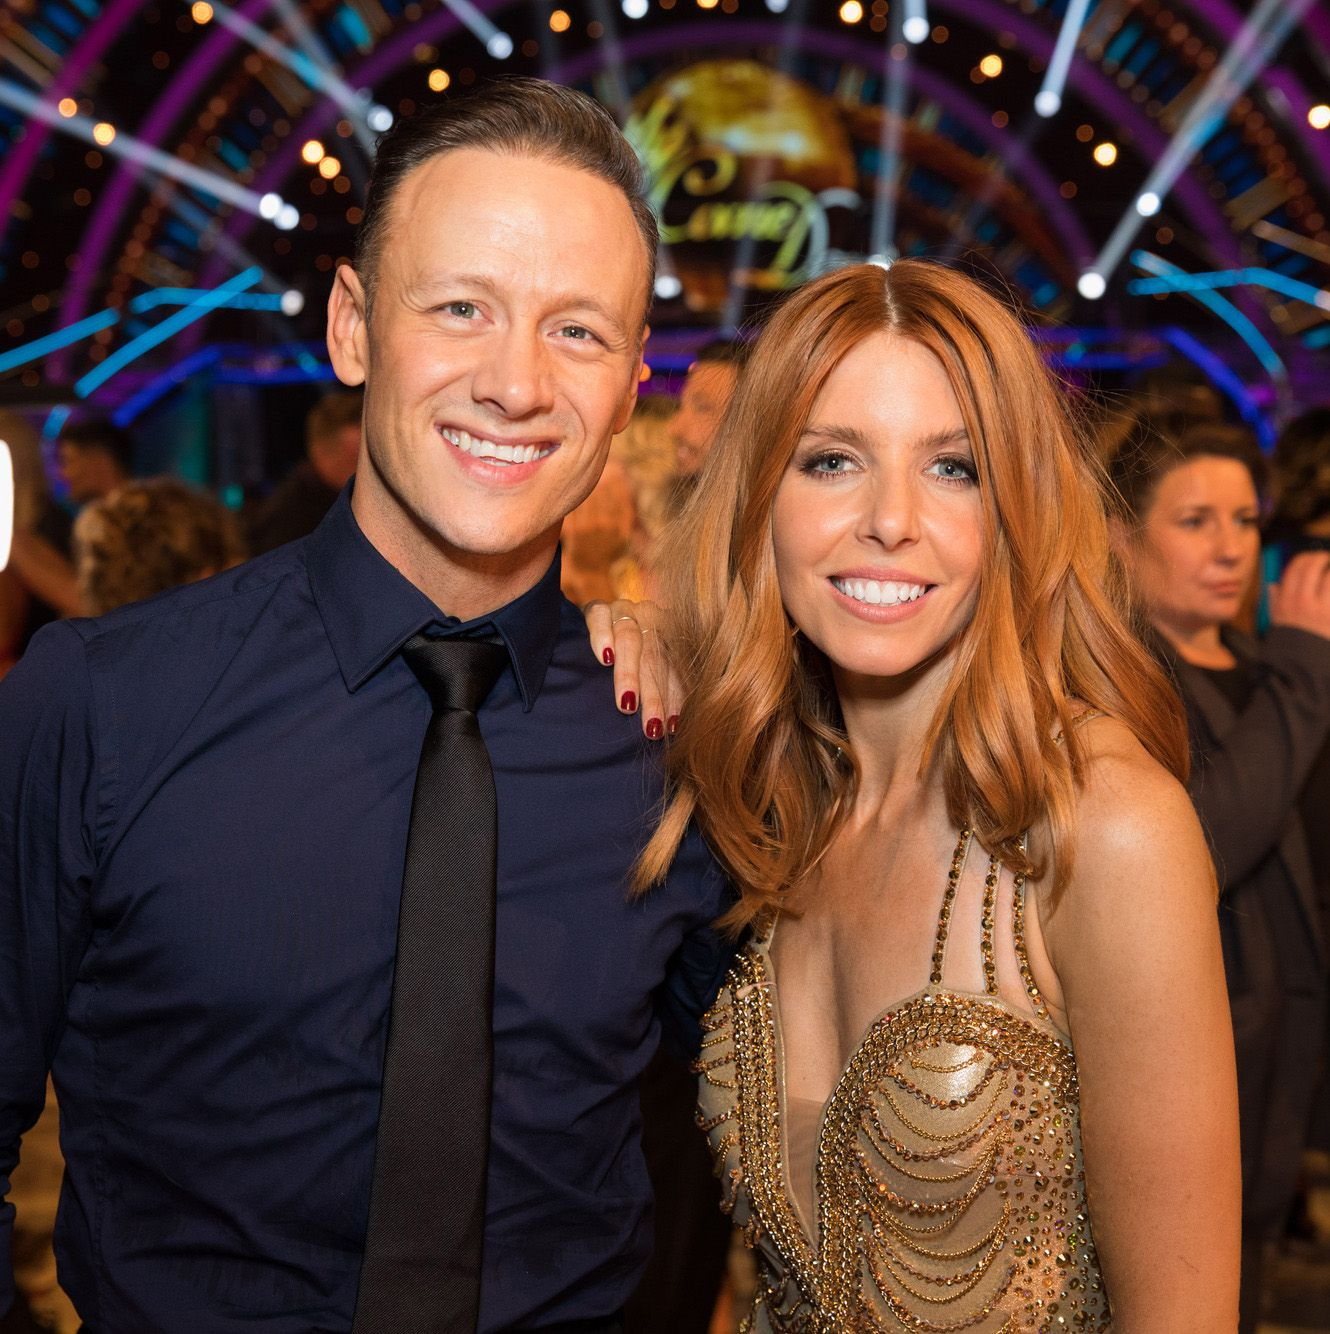 Stacey Dooley shares glimpse into Kevin Clifton's birthday party